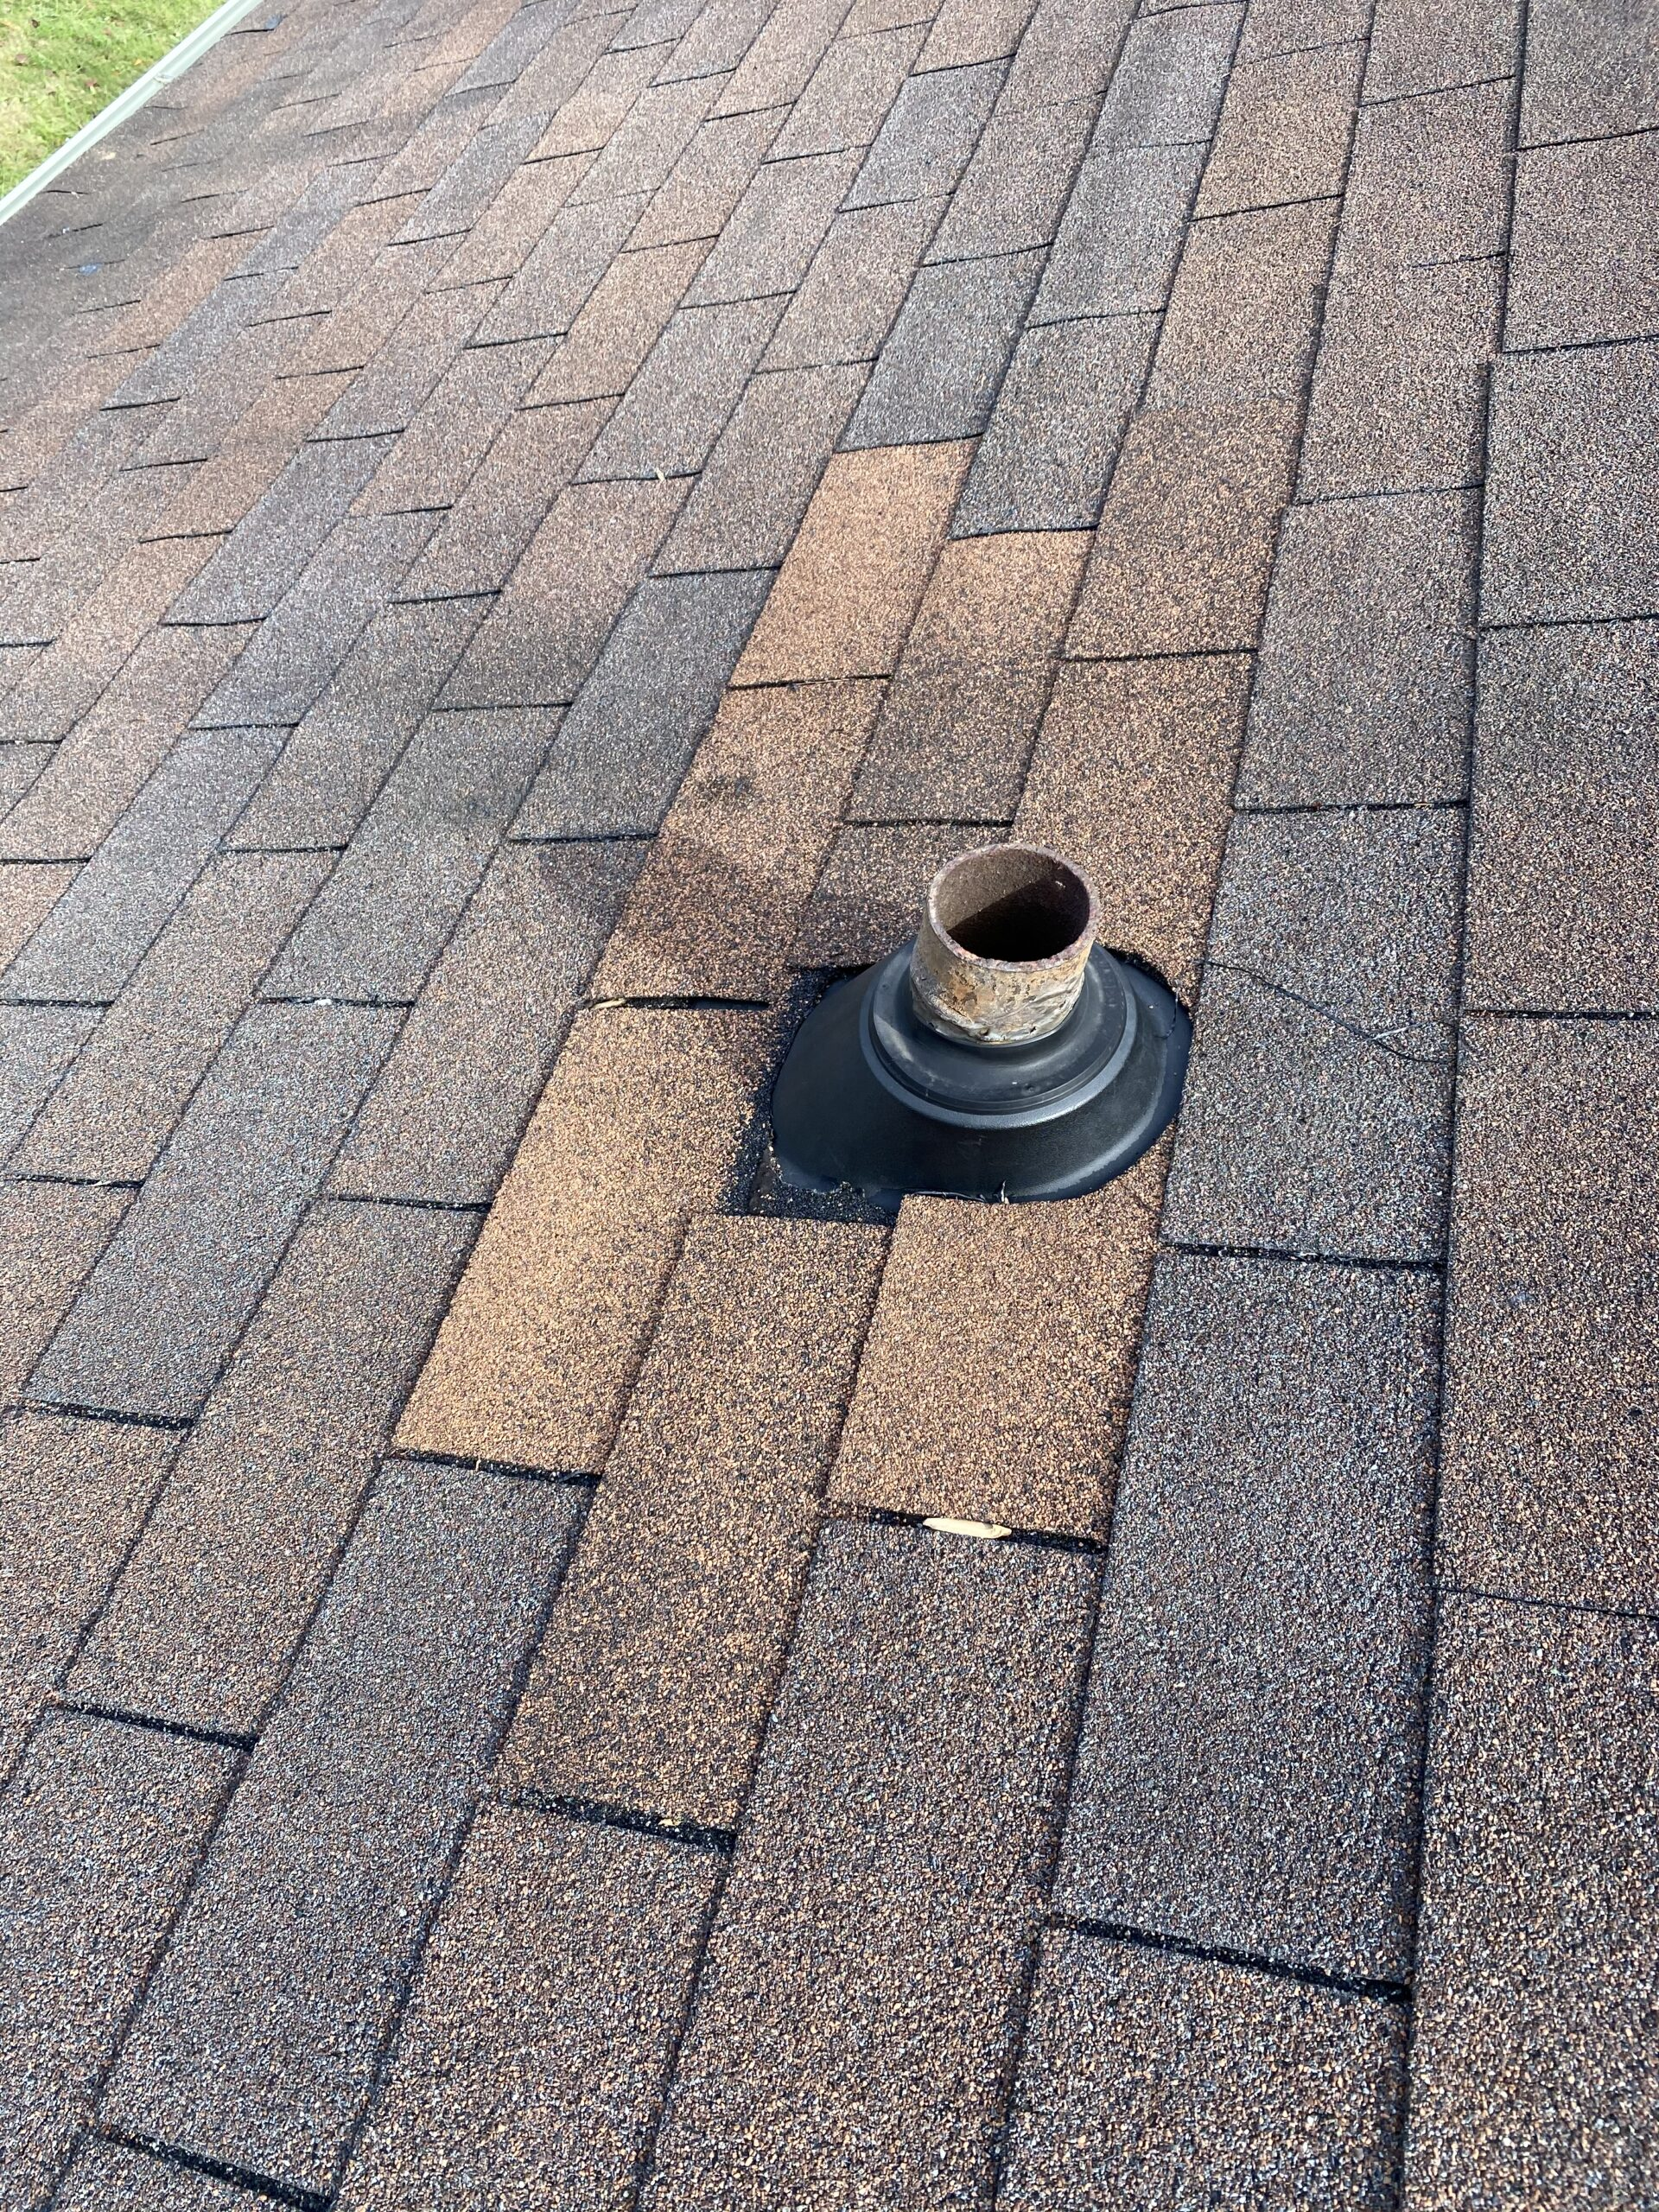 Pipe boot replacement this pipe boot is new and in a brown colored roof